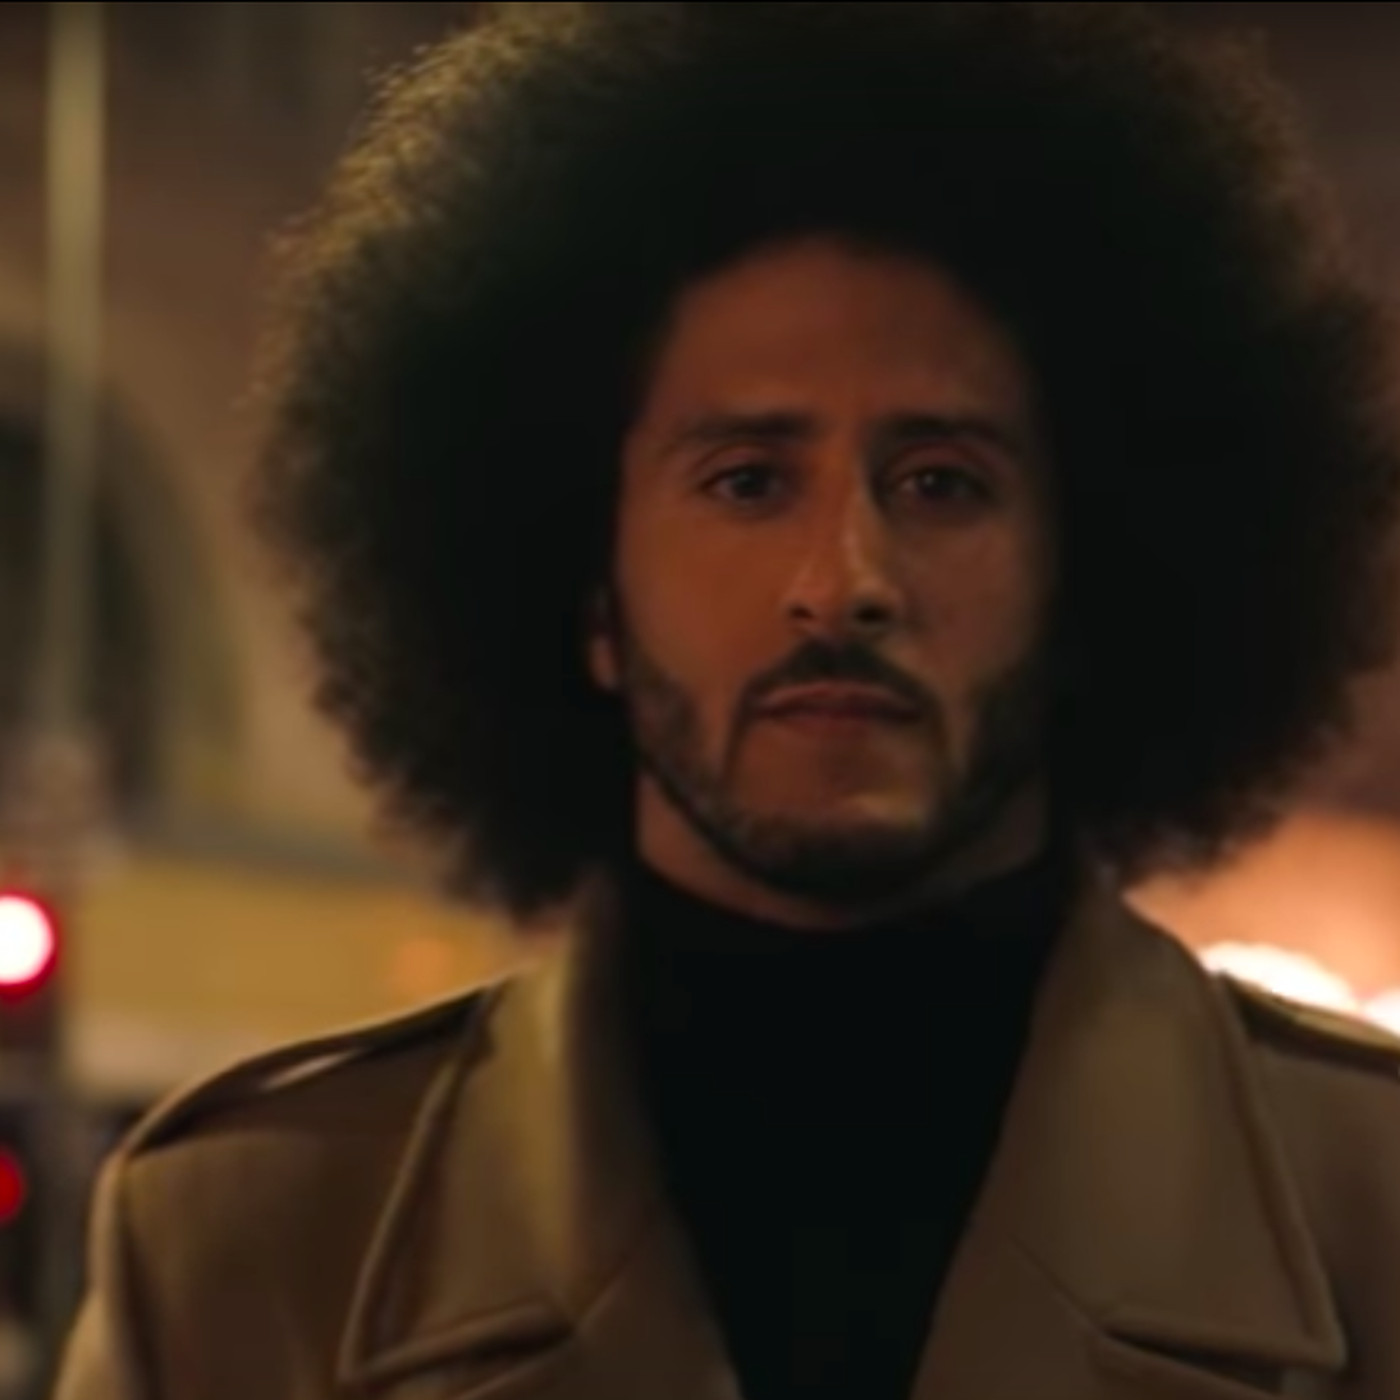 Colin Kaepernick S Nike Ad Raised His Profile But Diluted His Message Sbnation Com